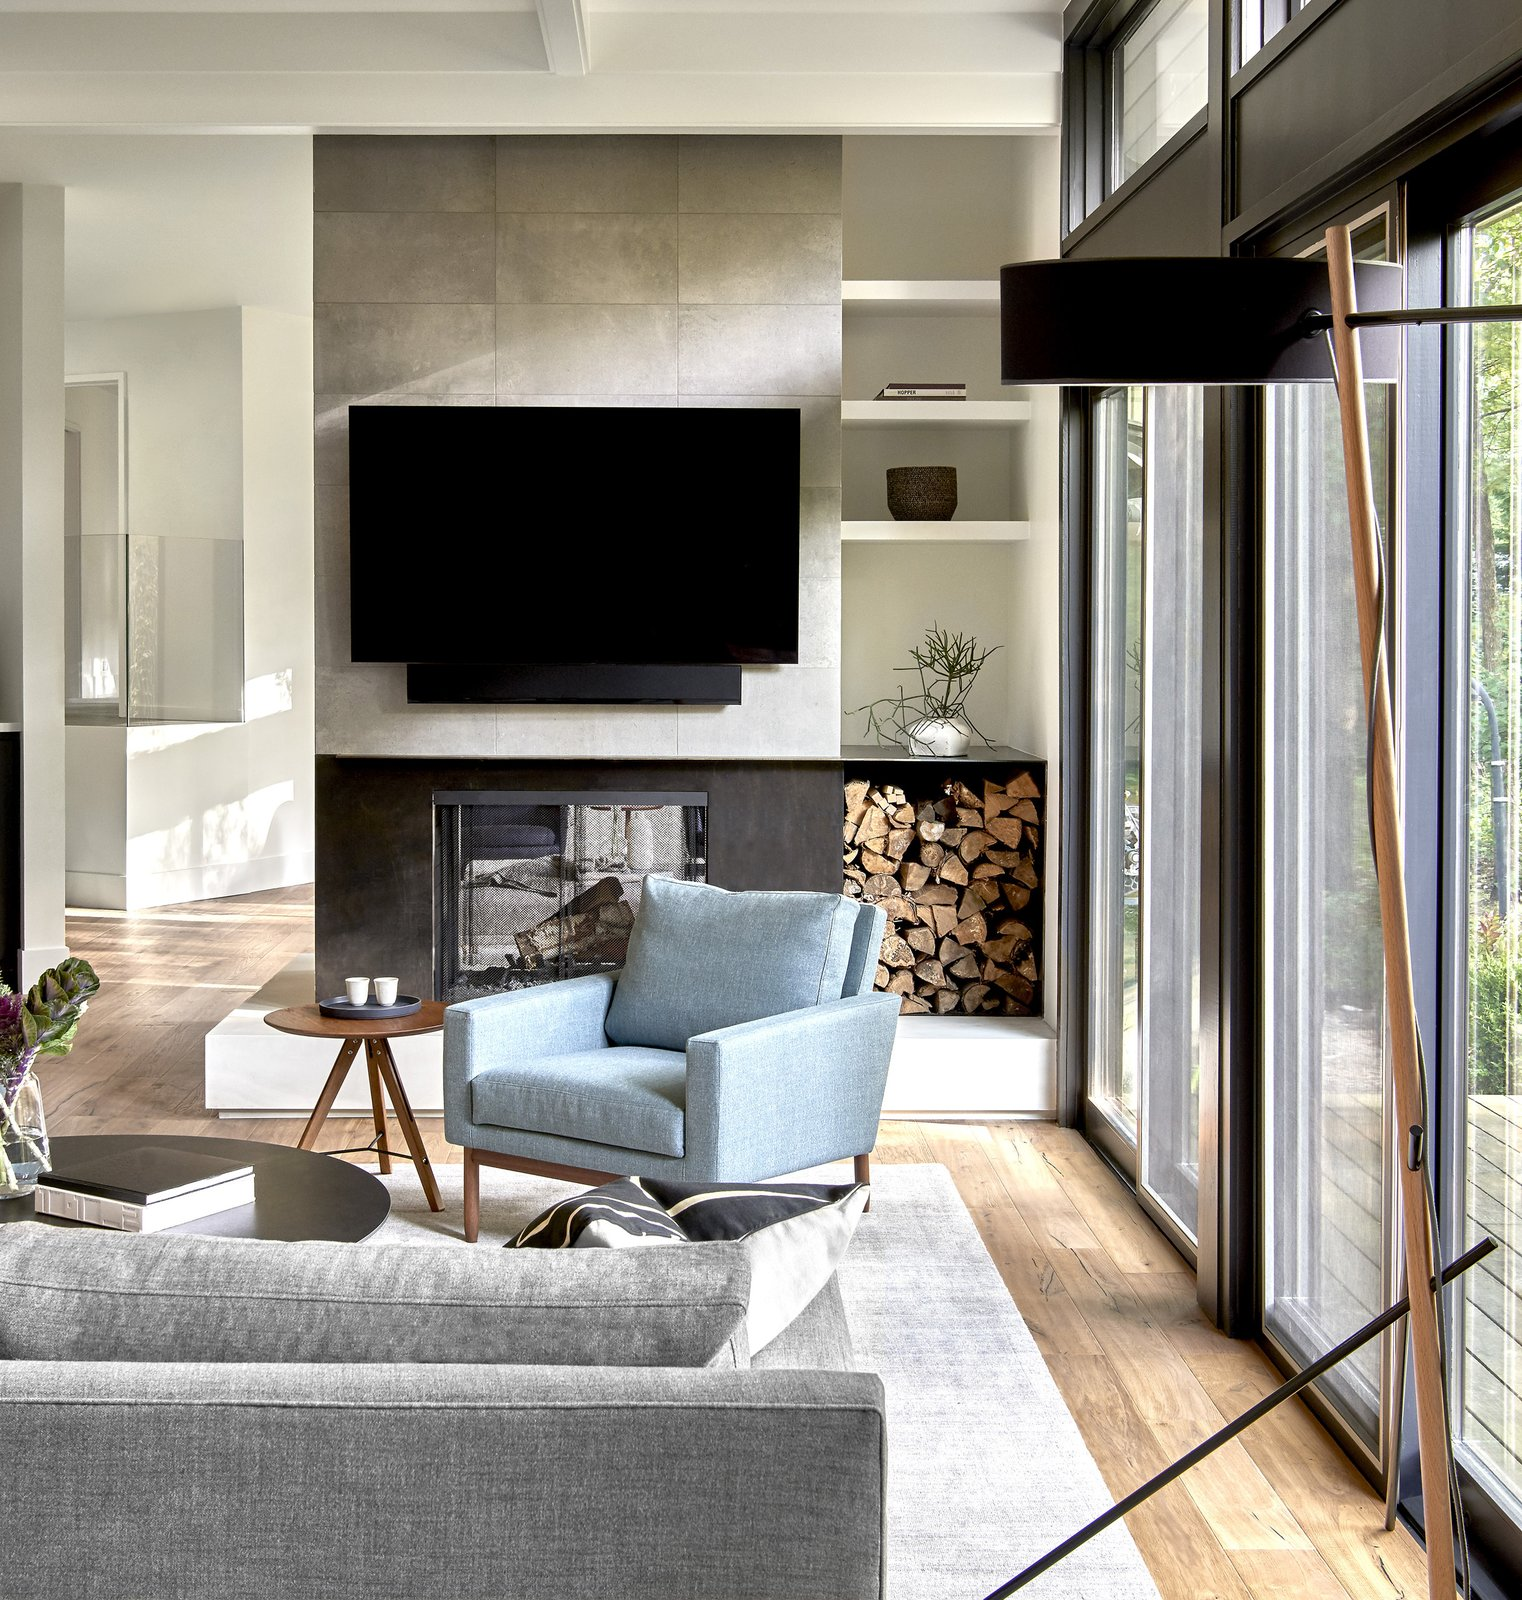 Living Room, Light Hardwood Floor, Chair, Wood Burning Fireplace, and Floor Lighting Double-Sided Fireplace in Family Room  Riverwoods by dSPACE Studio